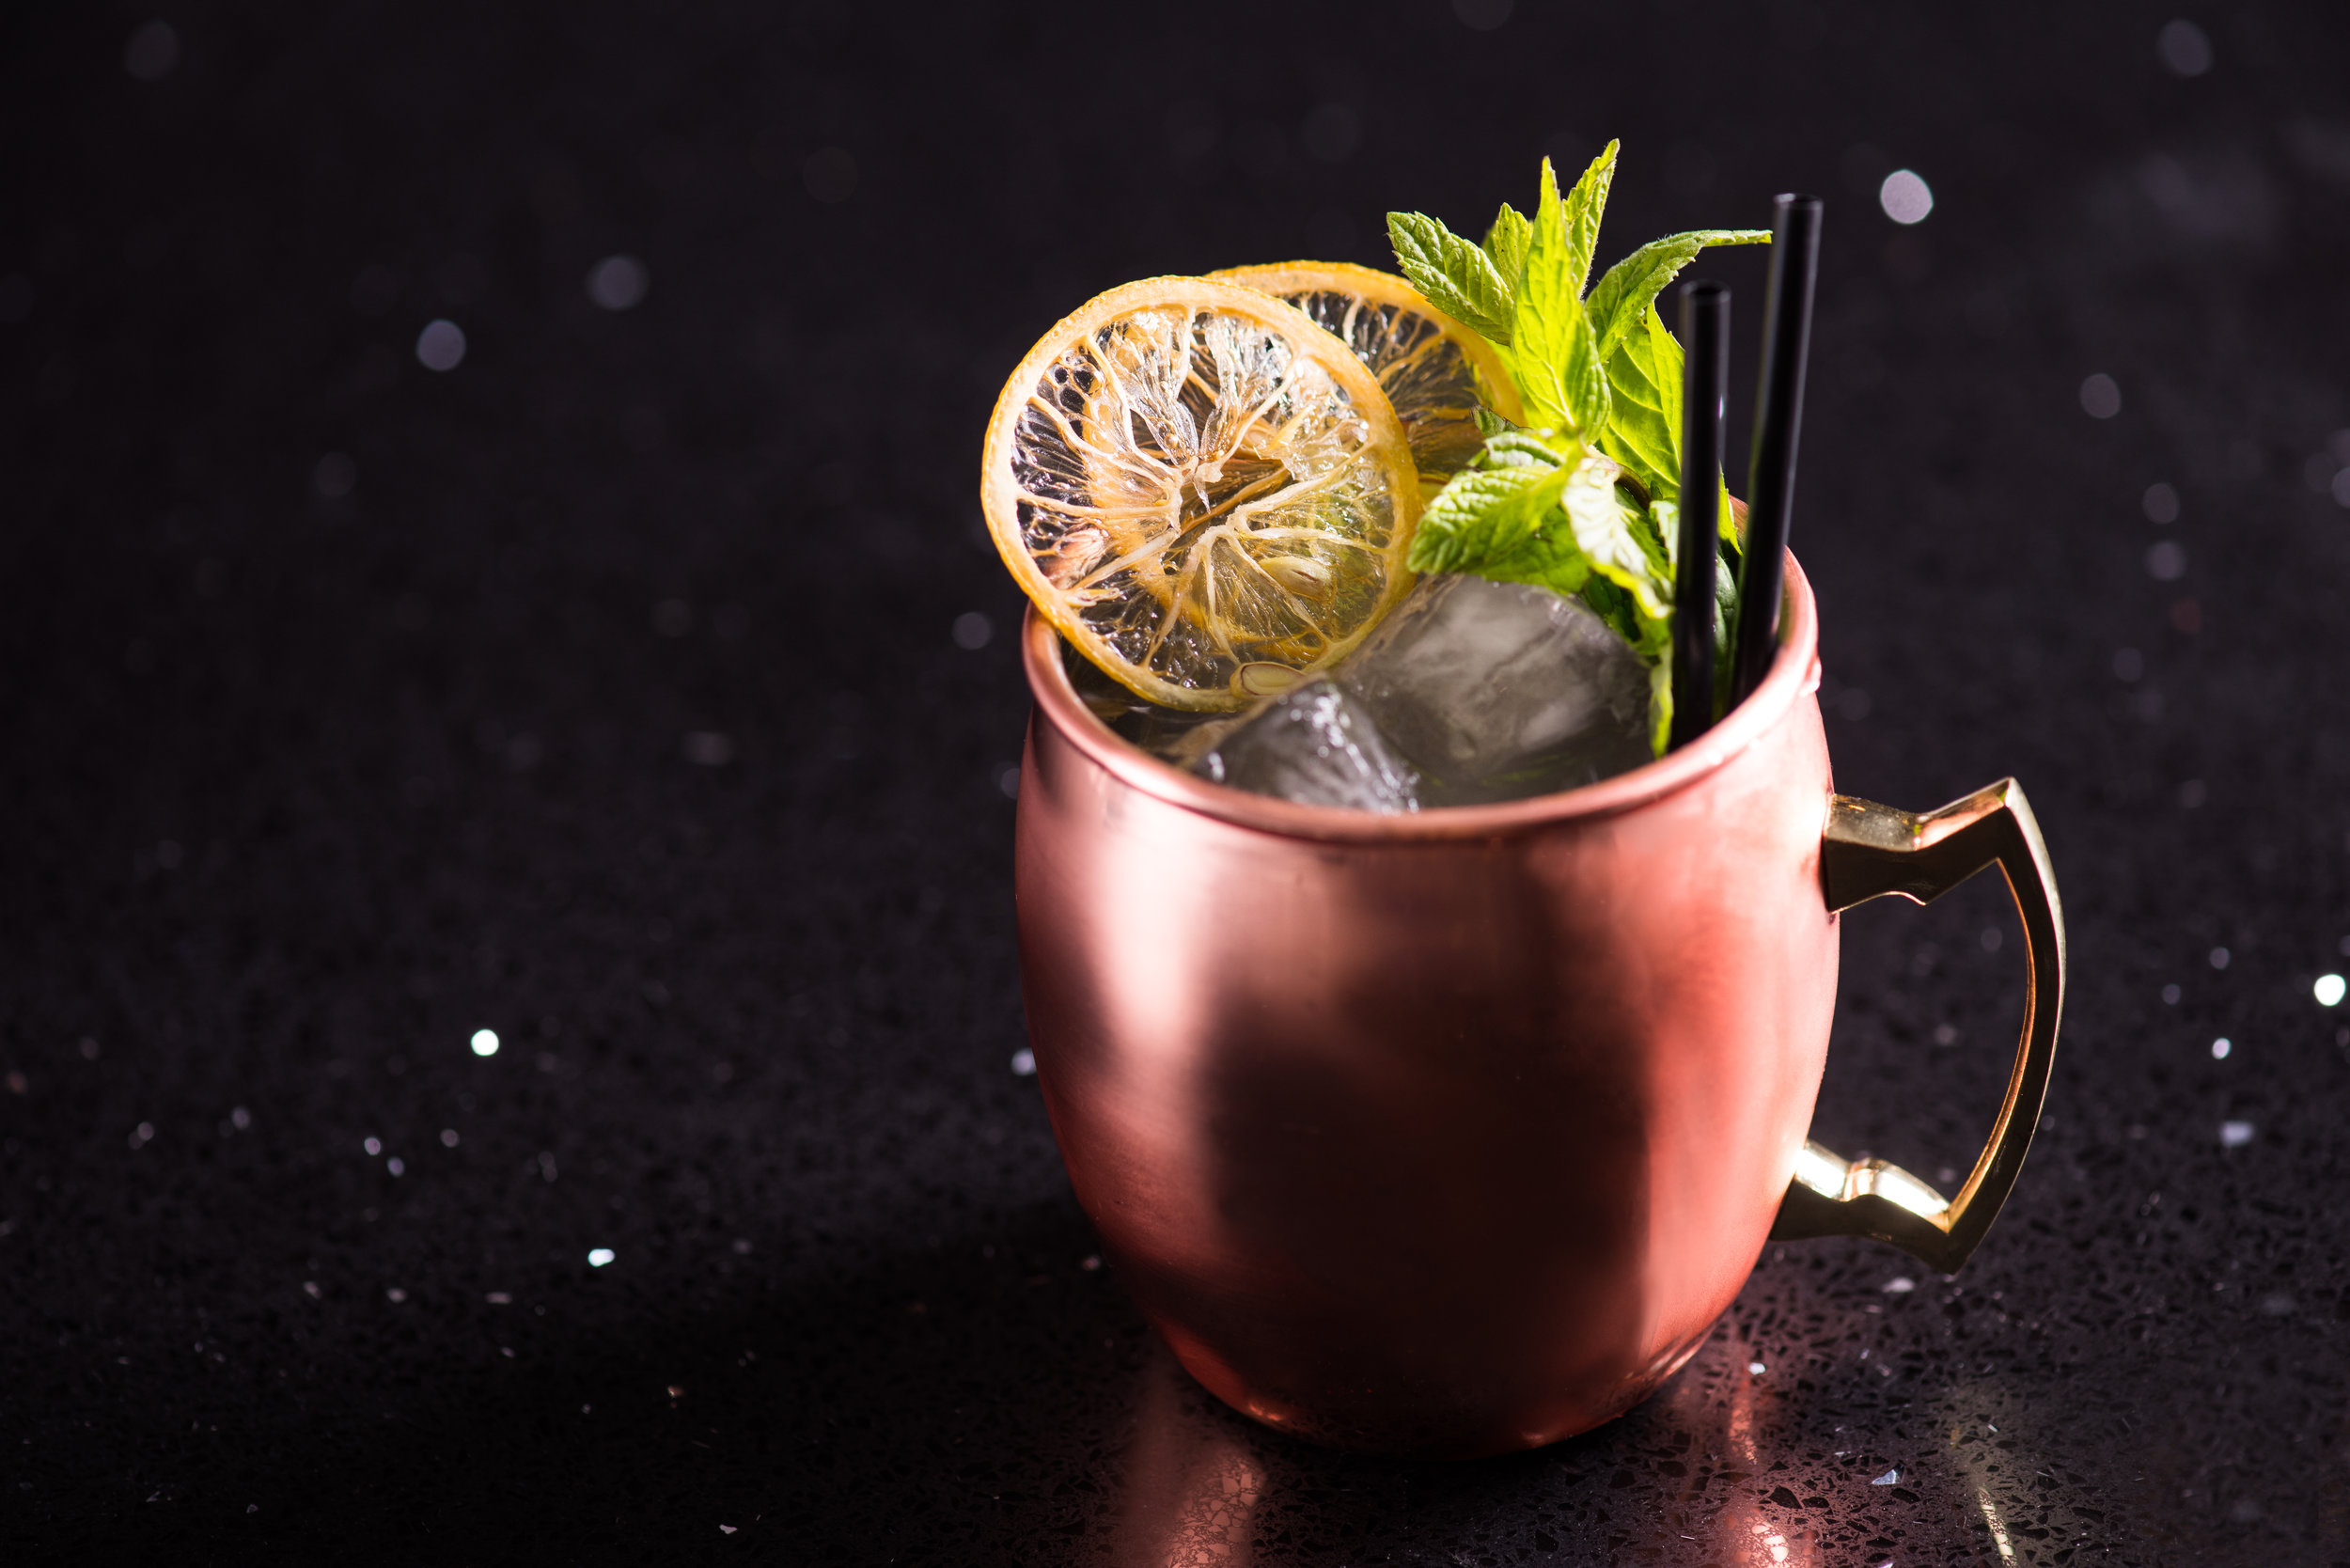 East Asian Mule, for  W Hotel, Jordan .  Photo: J. Adgeappa, Drink: U.Nijs.